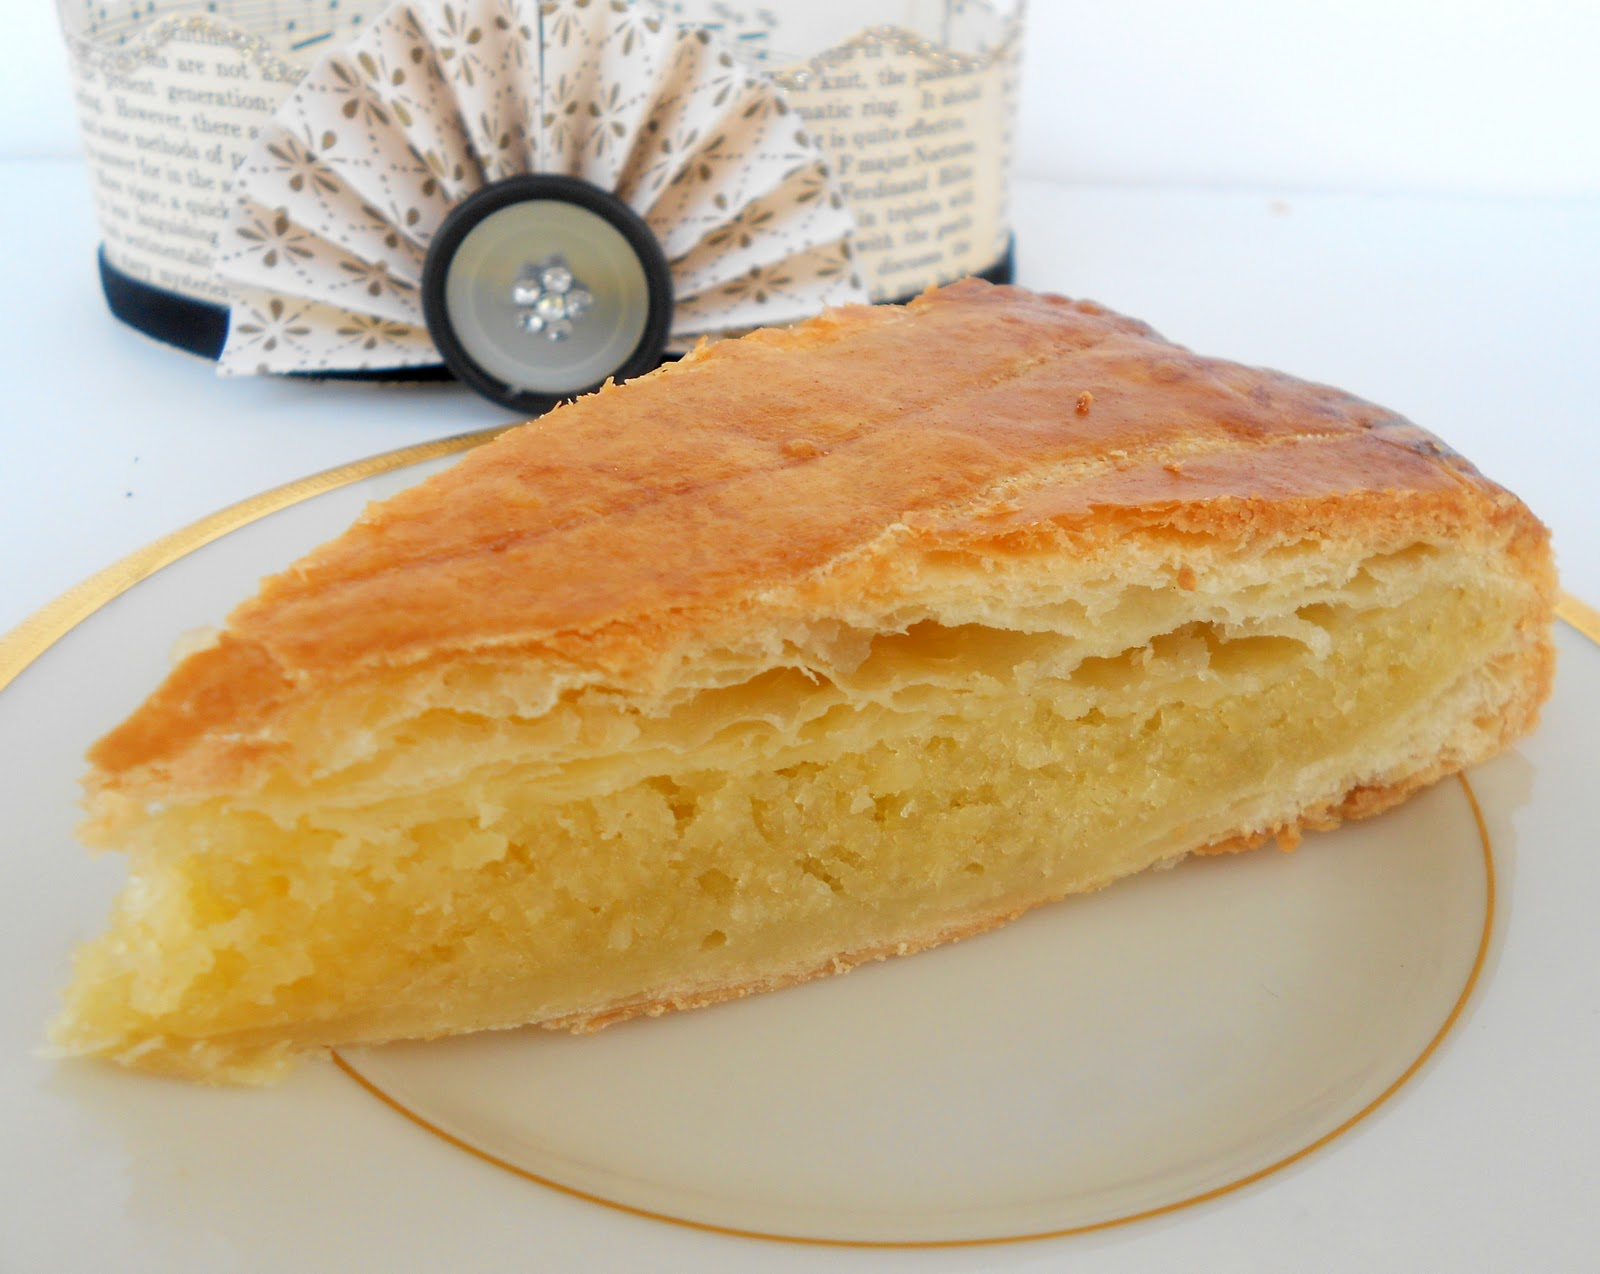 The Galette des Rois is the perfect dessert to bring to a dinner party ...